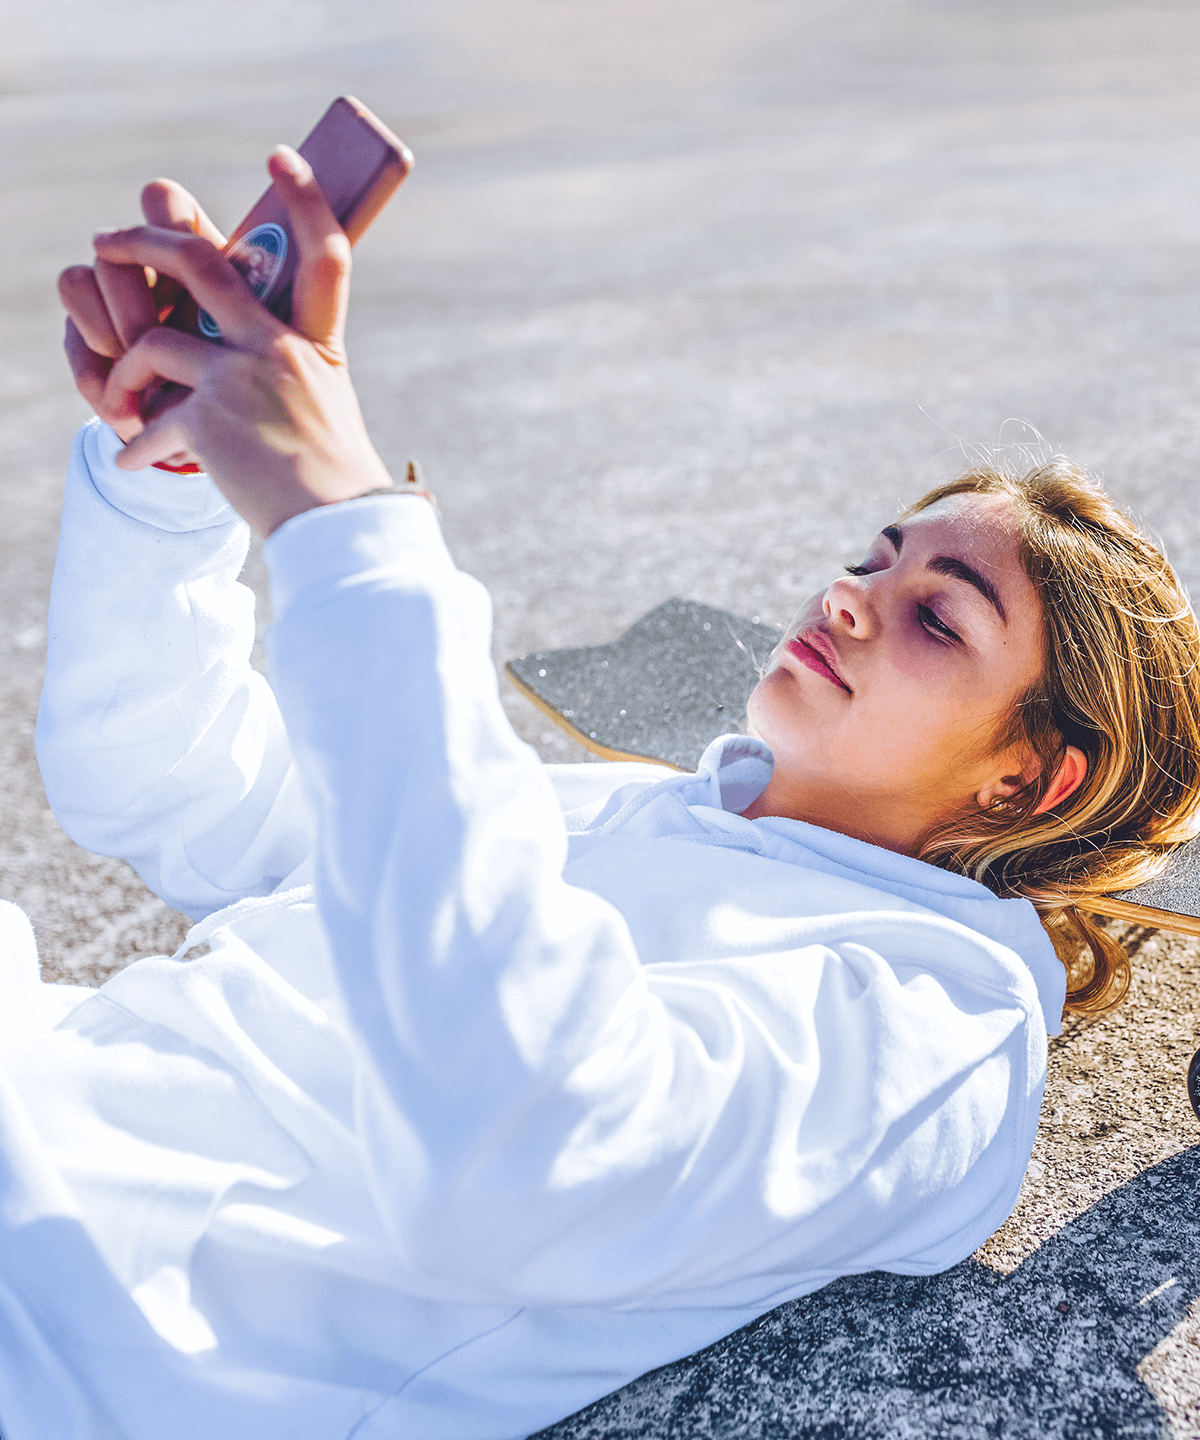 A teenage girl laying down on a skateboard using the Mydoh app on her phone